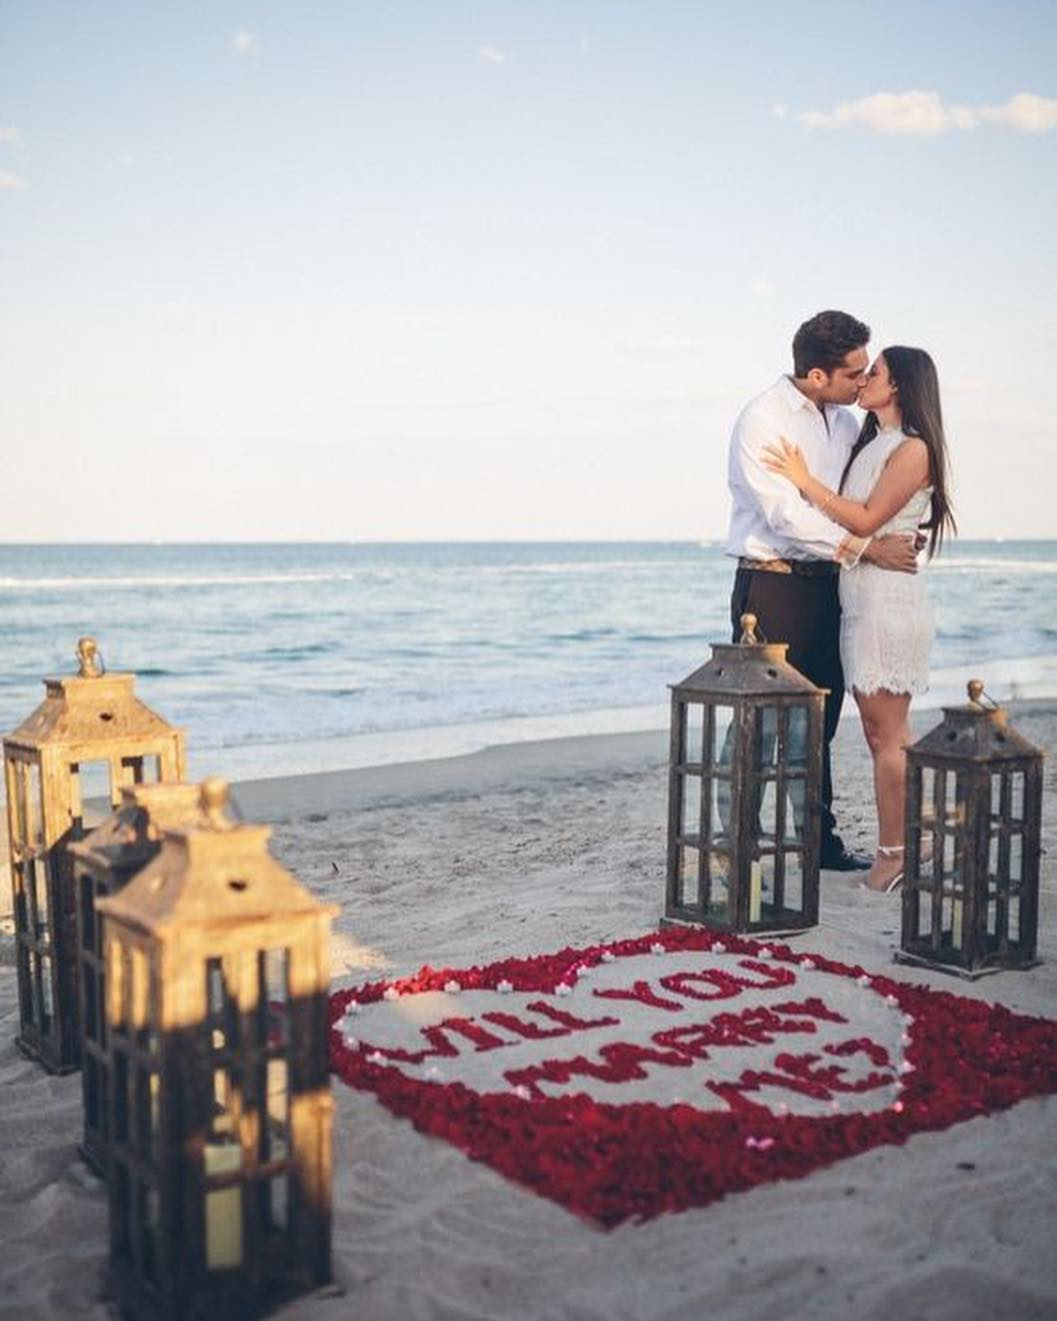 10 Most Unique, Creative And Romantic Proposal Ideas That